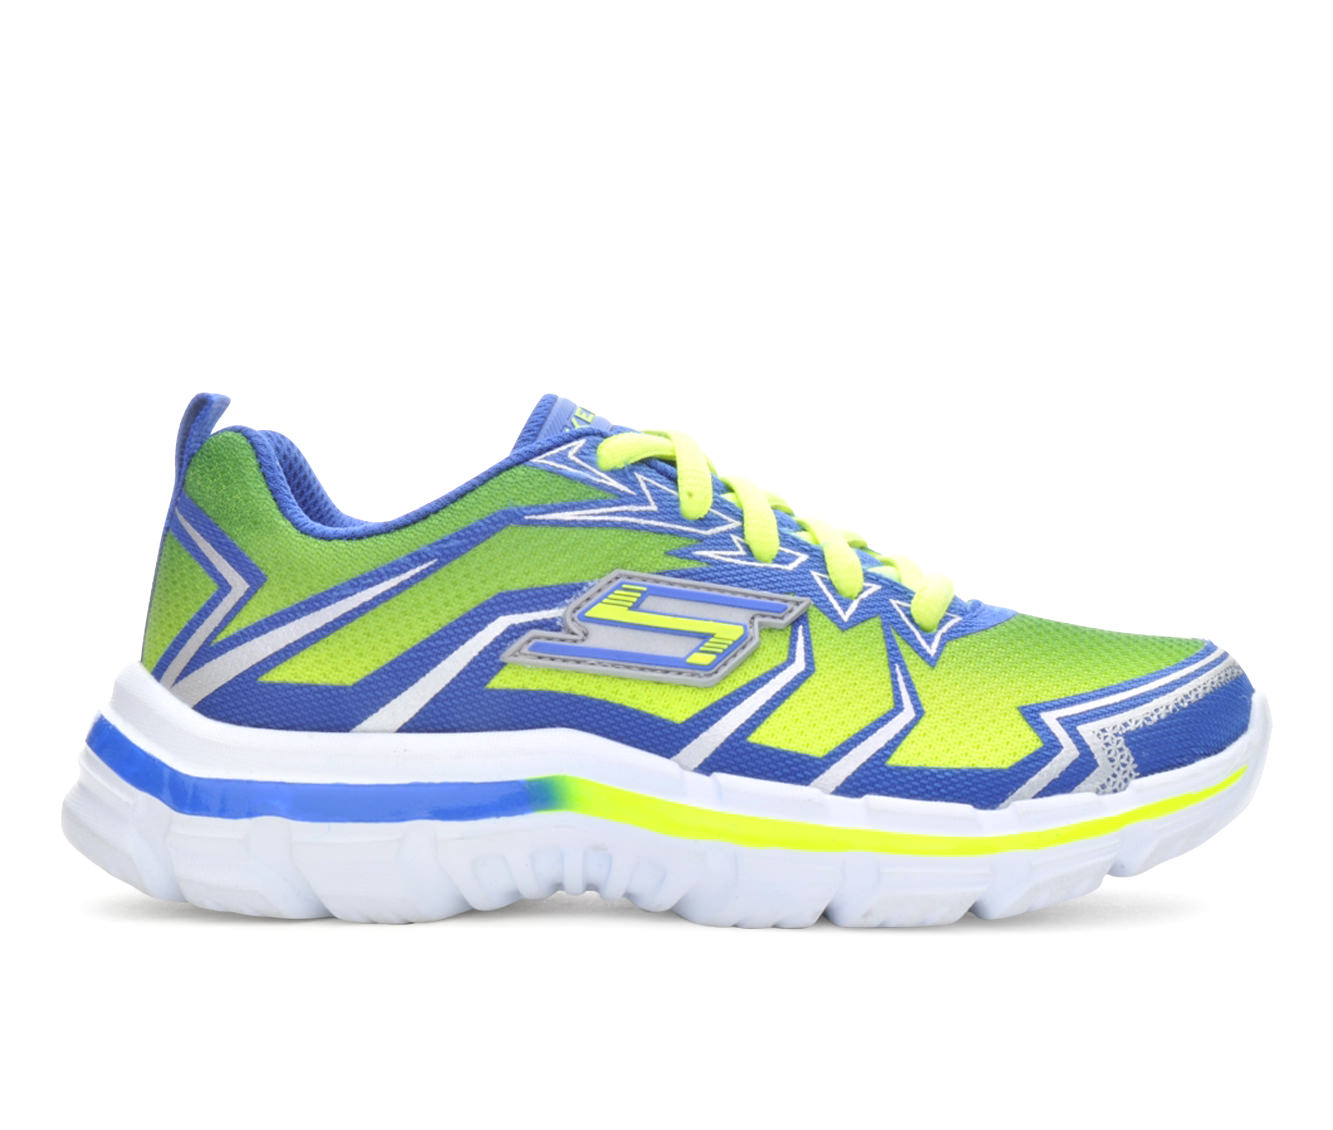 Boys' Skechers Nitrate 2- Thermoblast Running Shoes (Green)